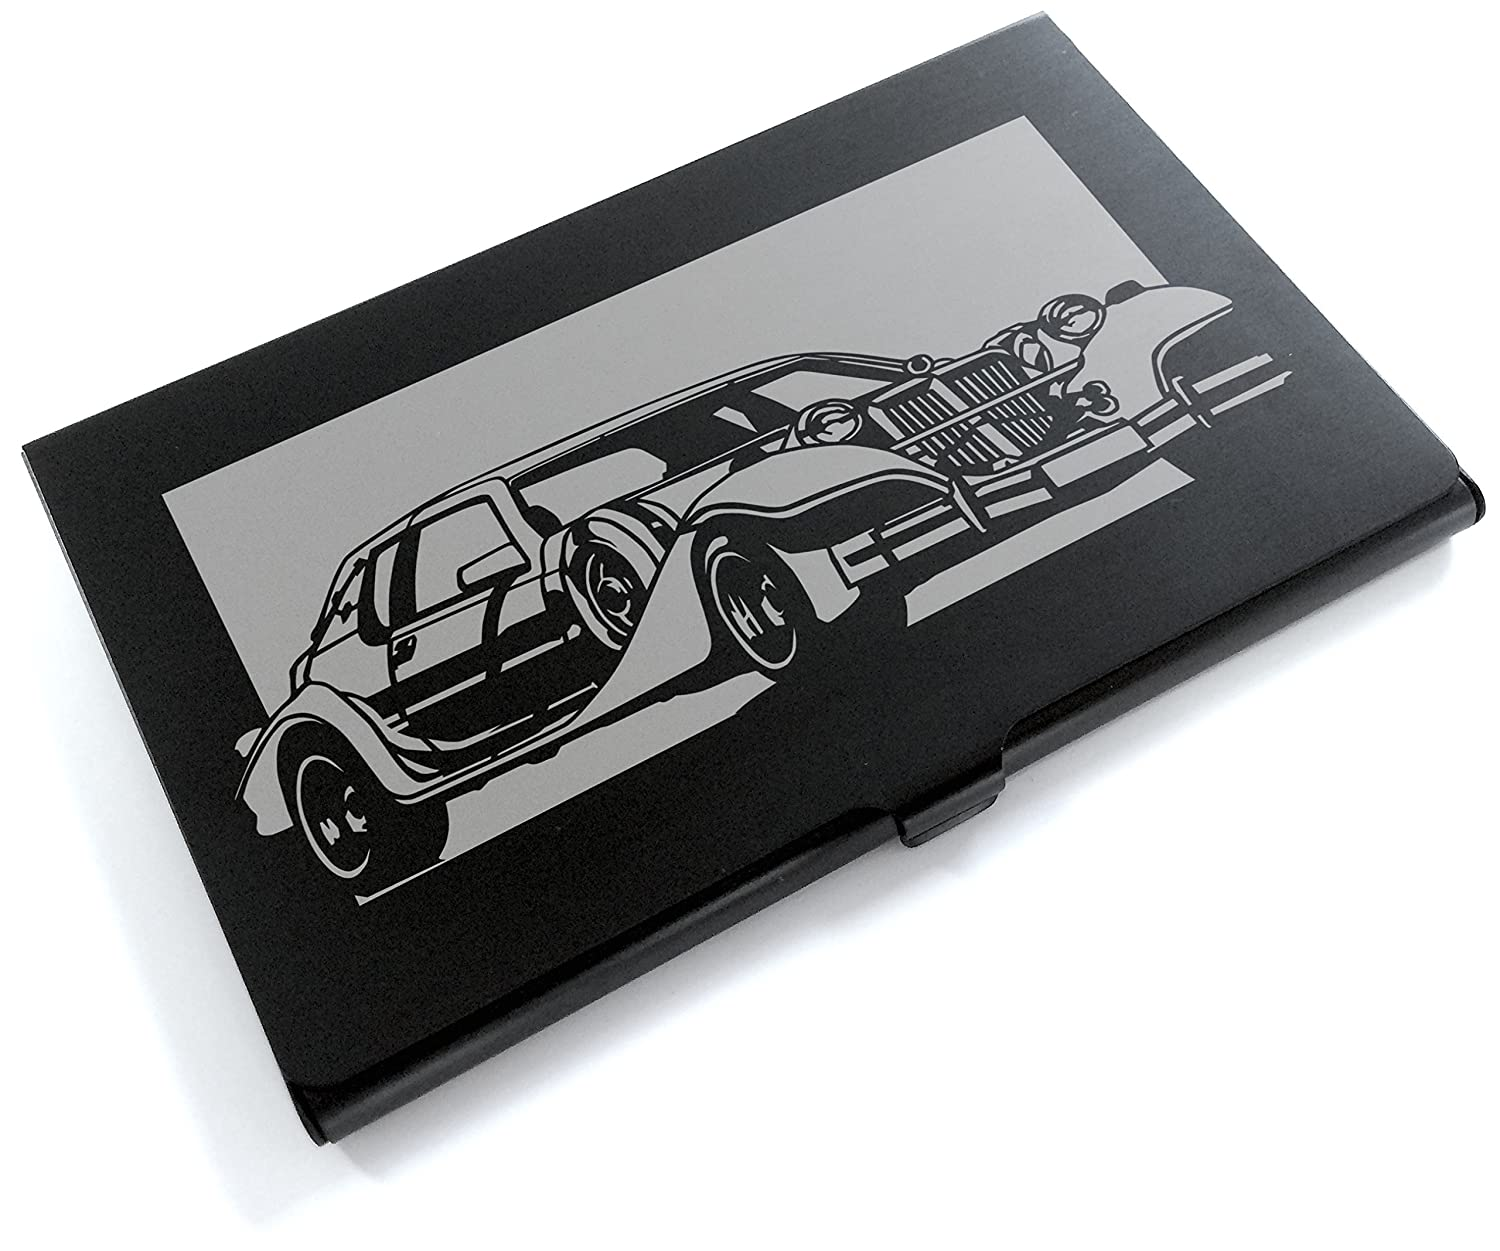 Black Alumite Card Case MITSUOKA Le-Seyde Aluminum brooklyn bridge landmark building 3d pop up greeting card laser cutting dies envelope hollow carved handmade kirigami gifts